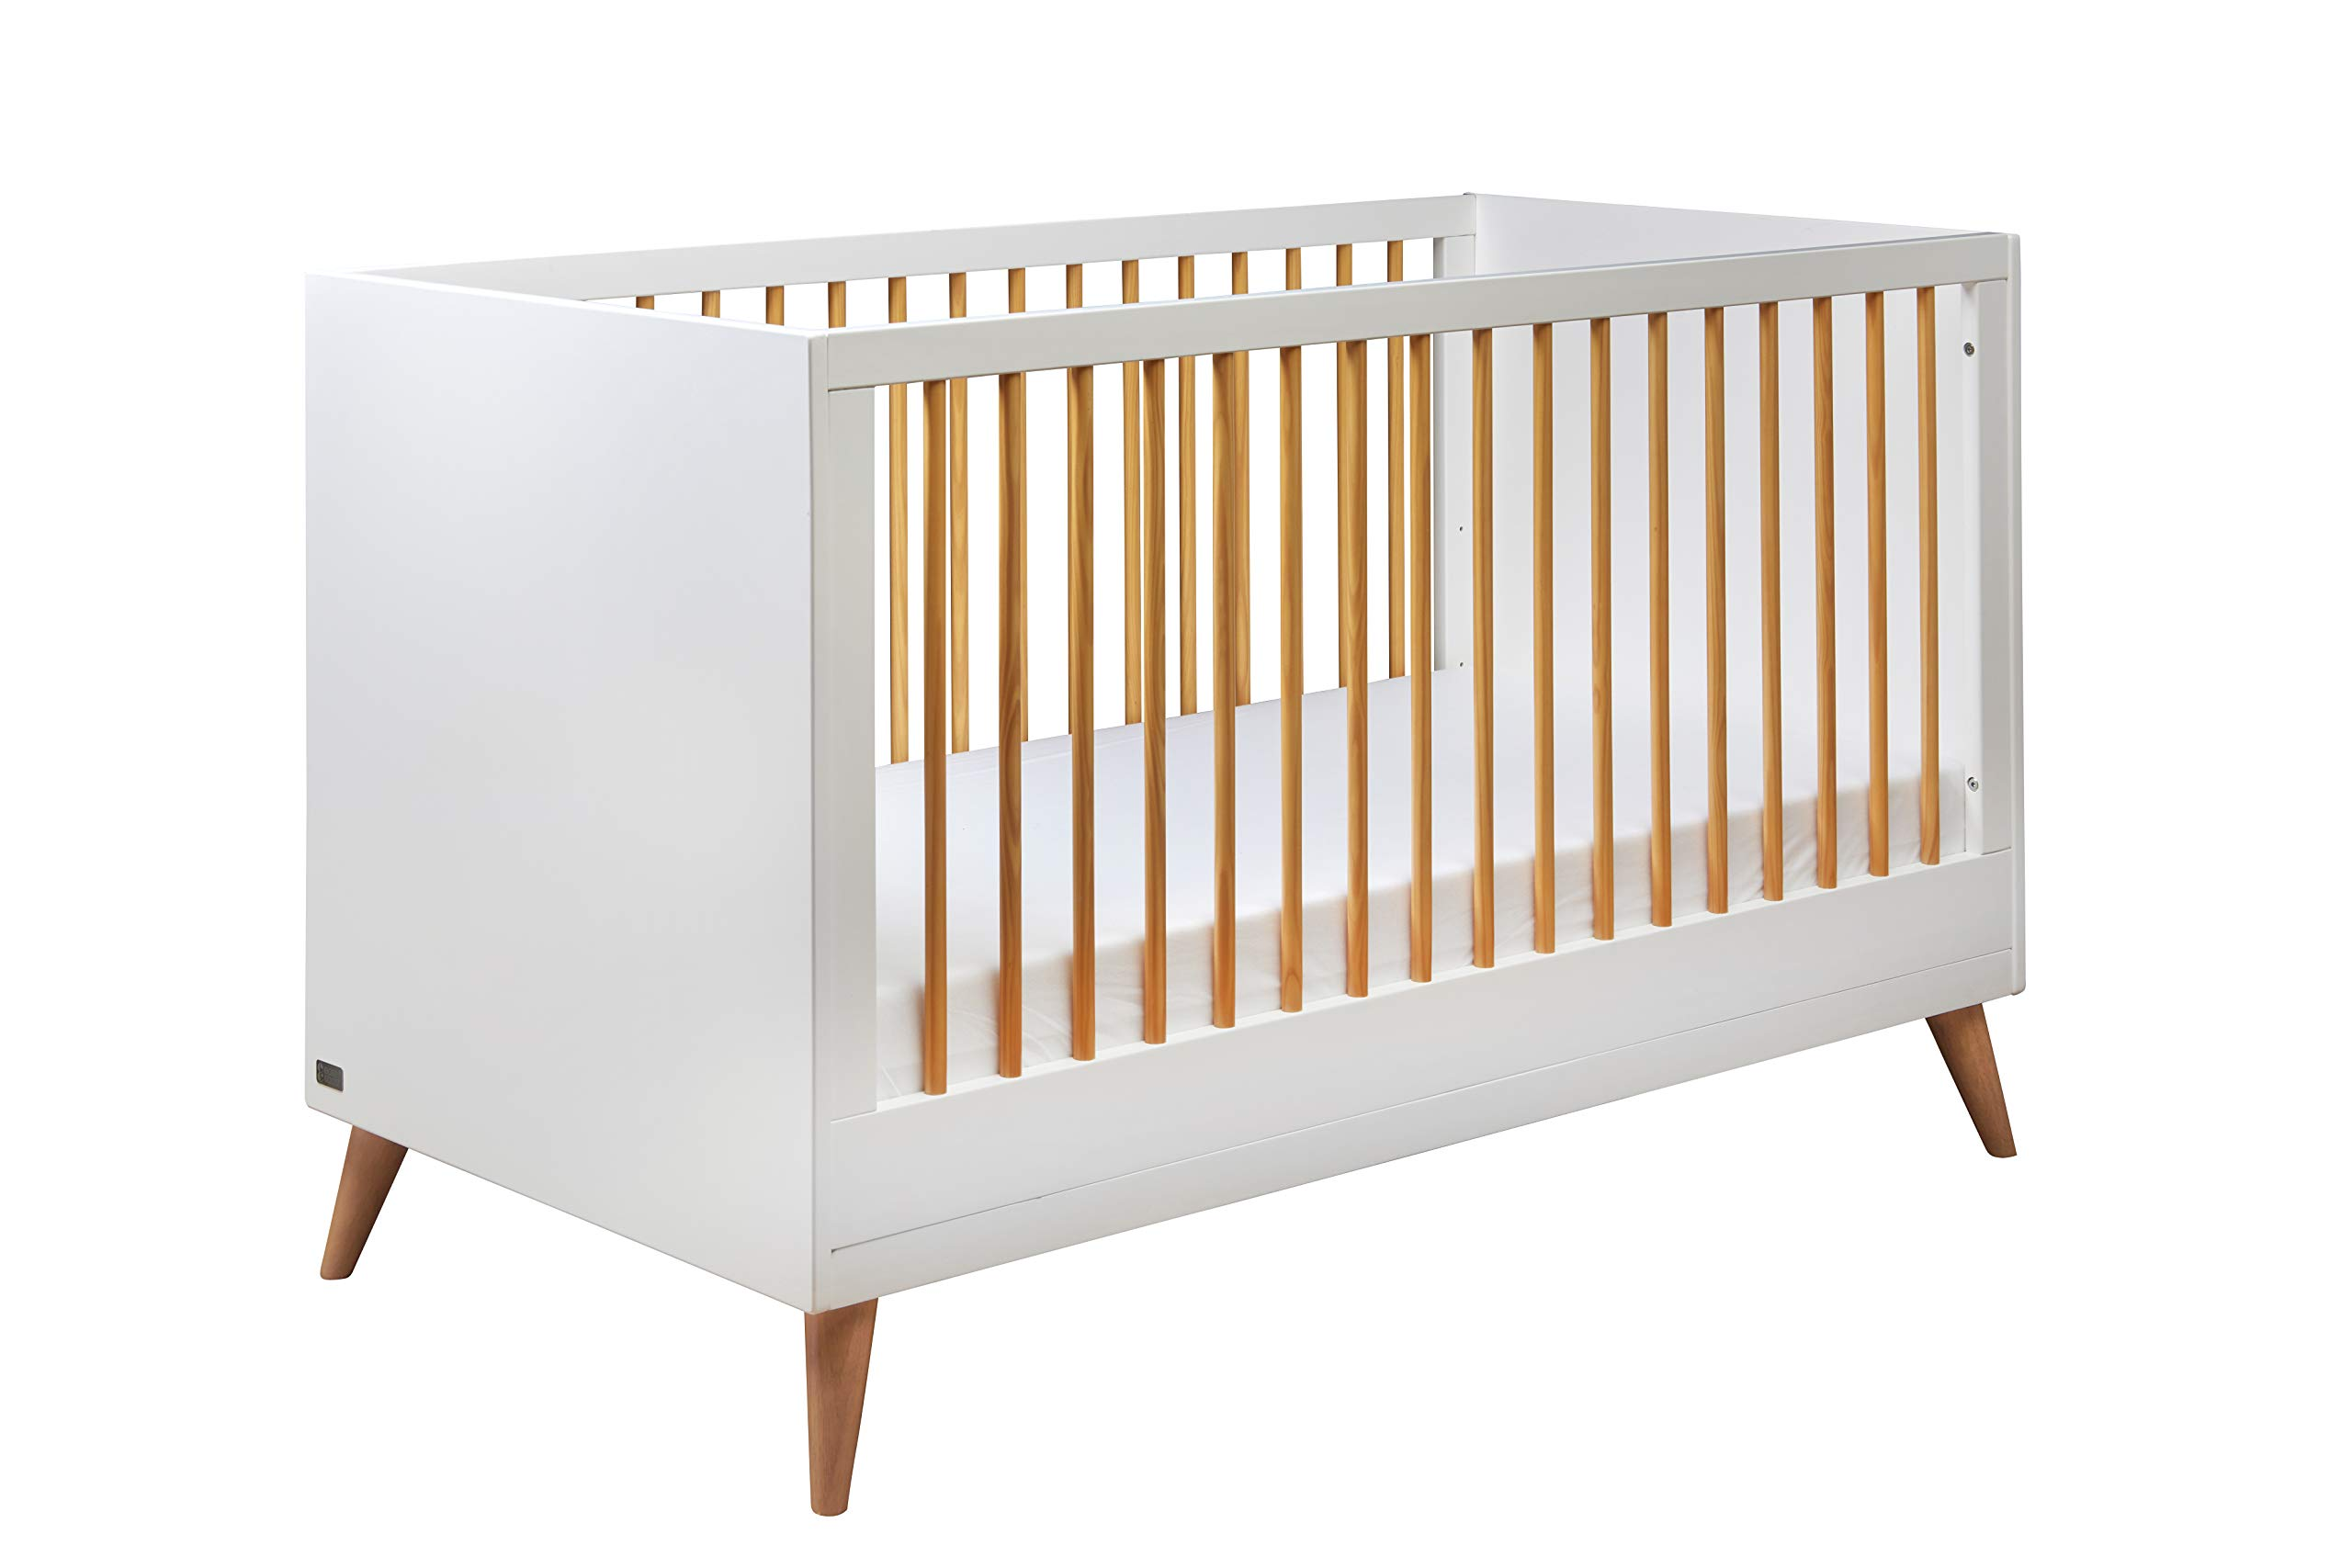 East Coast Nursery Panama Cotbed East Coast Nursery Ltd Converts to a toddler bed Three base heights Two fixed sides 1